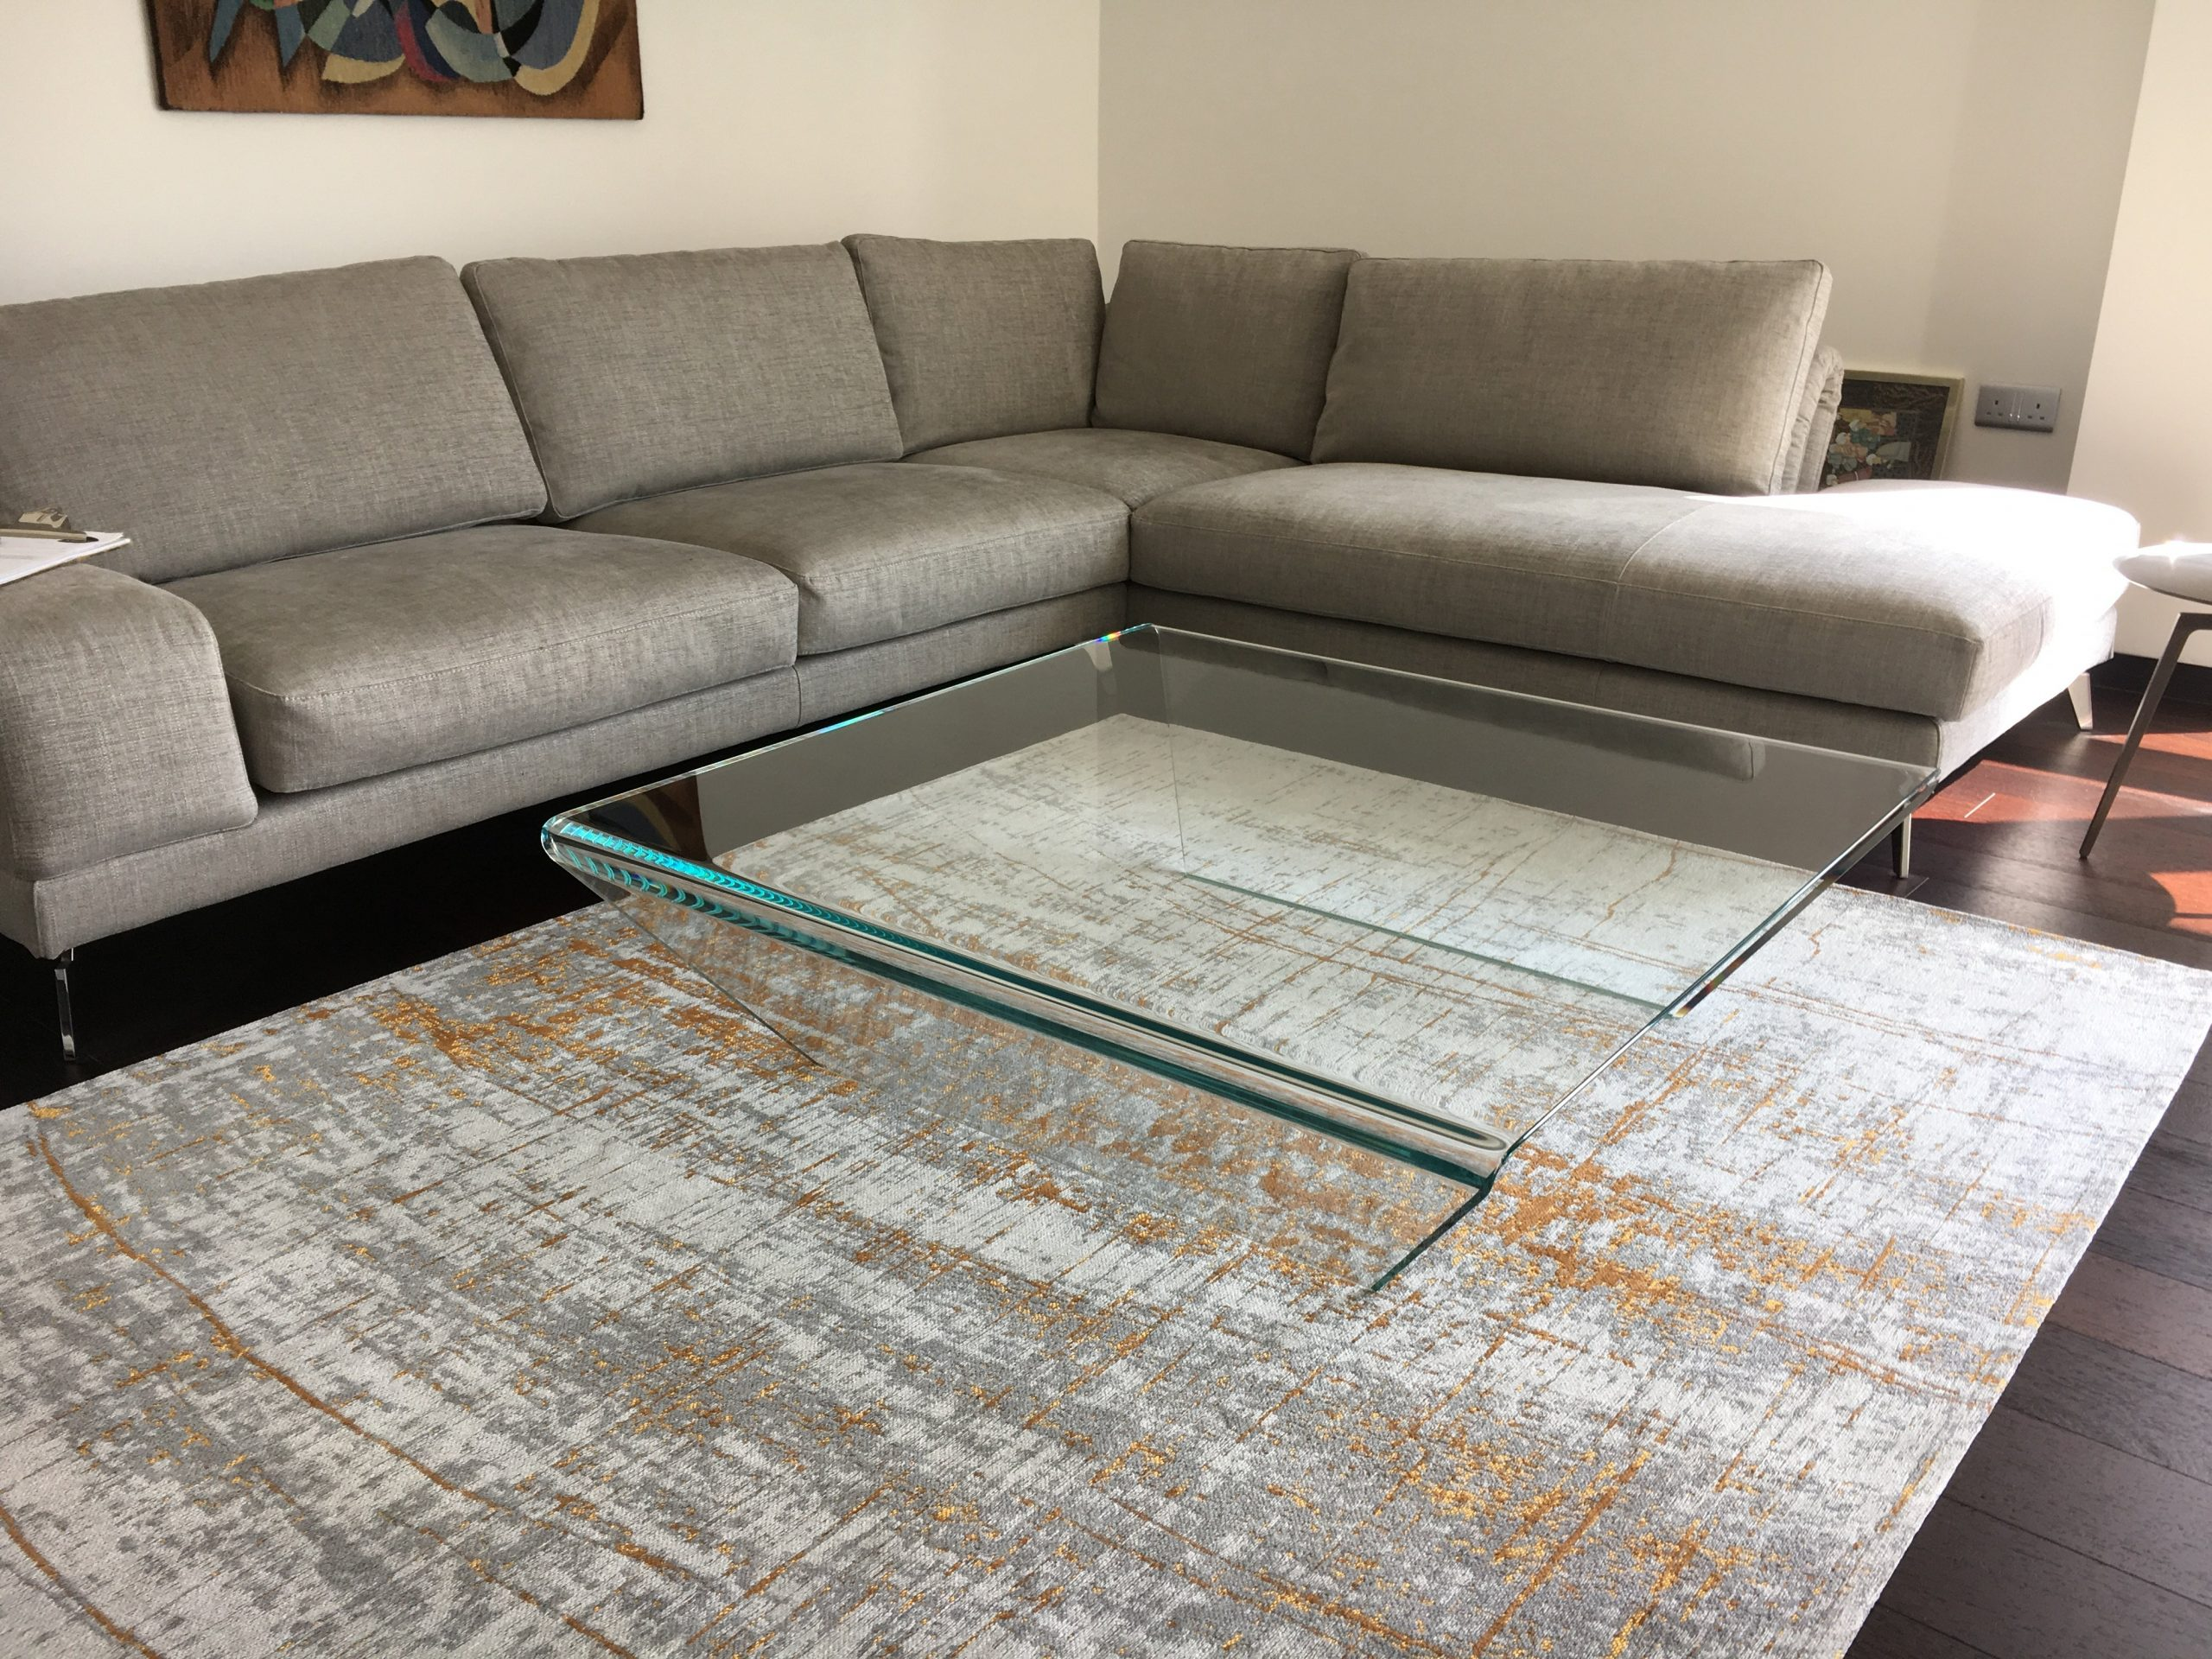 Rubino Glass Coffee table